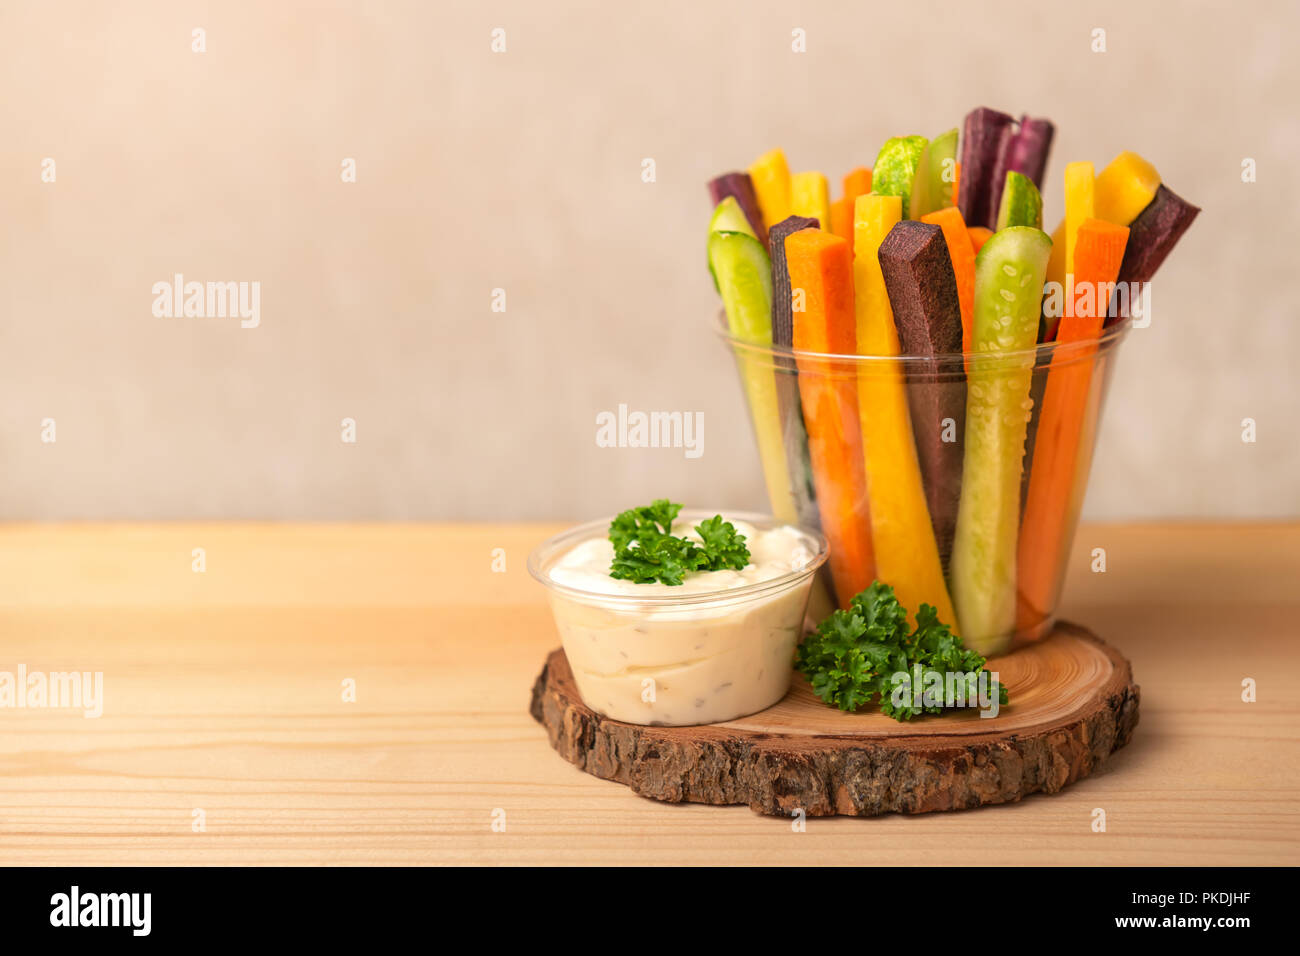 Colorful Carrots And Cucumbers Vegetables Julienned For Salad And